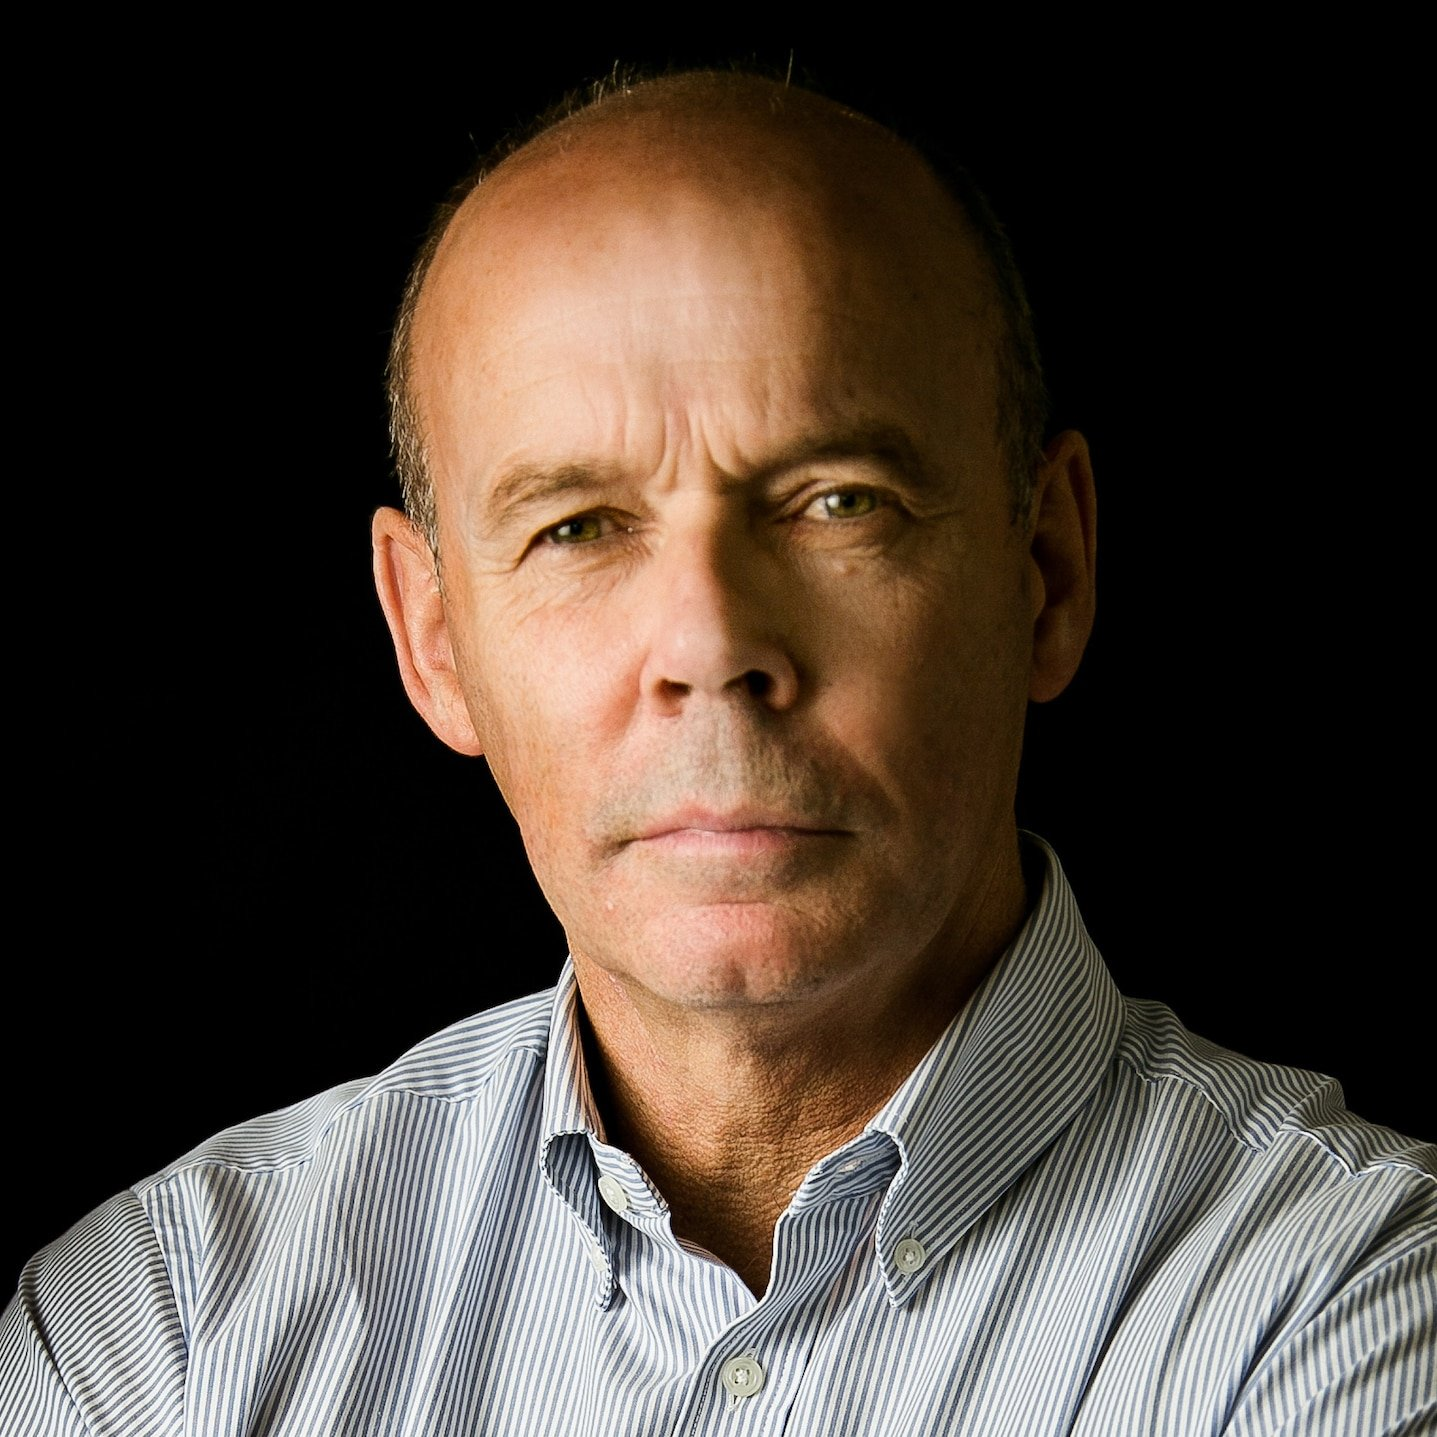 Sir-Clive-Woodward-England-Rugby-World-Cup-Coach-Director-Sport-Team-GB-Hive-Learning-Leadership-inspirational-speaker-at-Great-British-Speakers